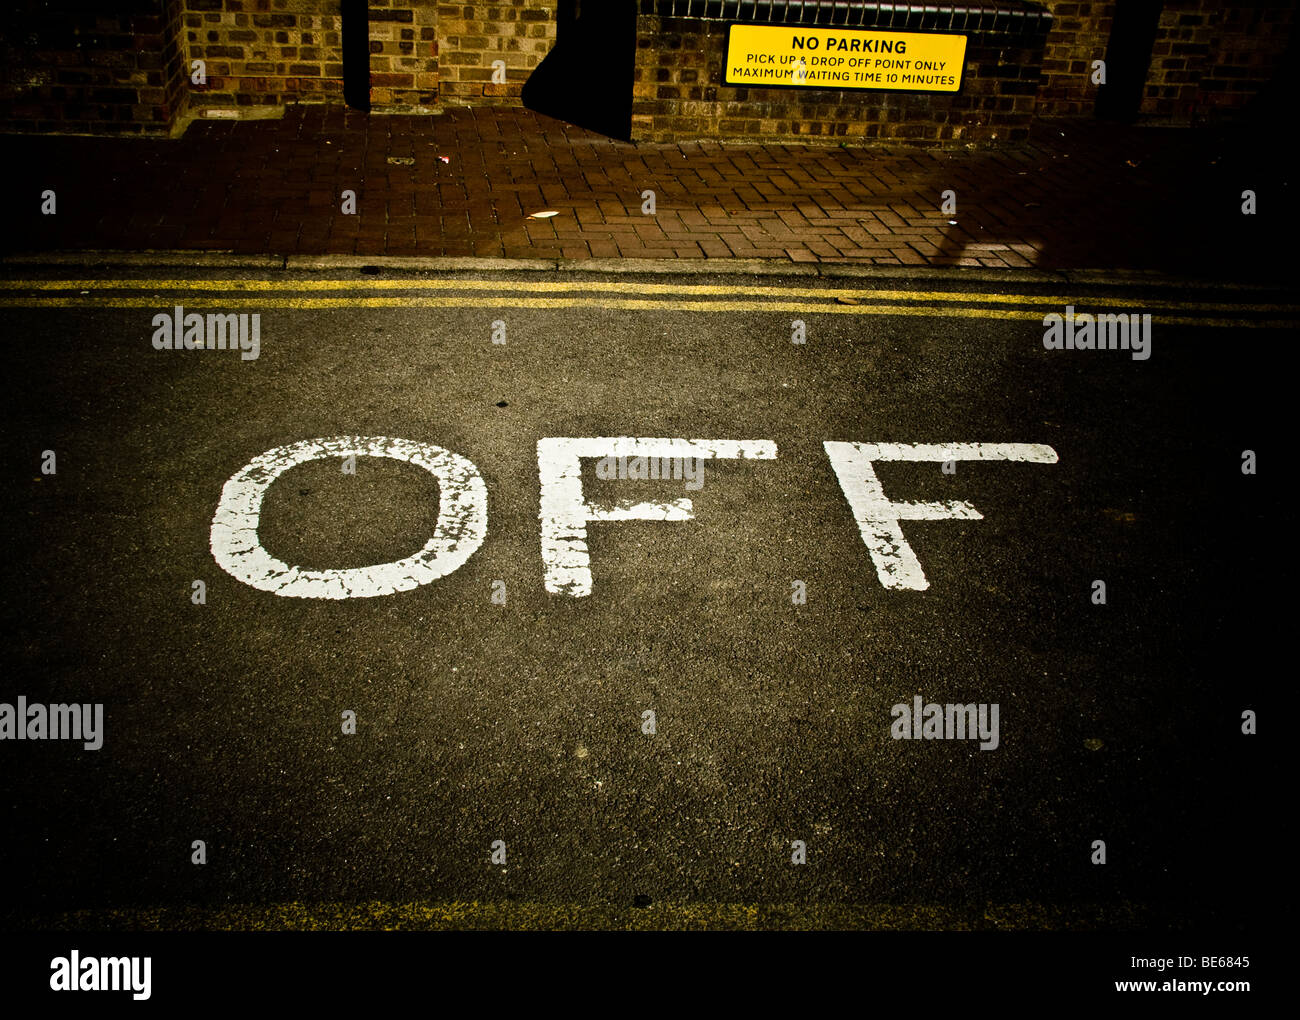 off  written in paint on the road. - Stock Image